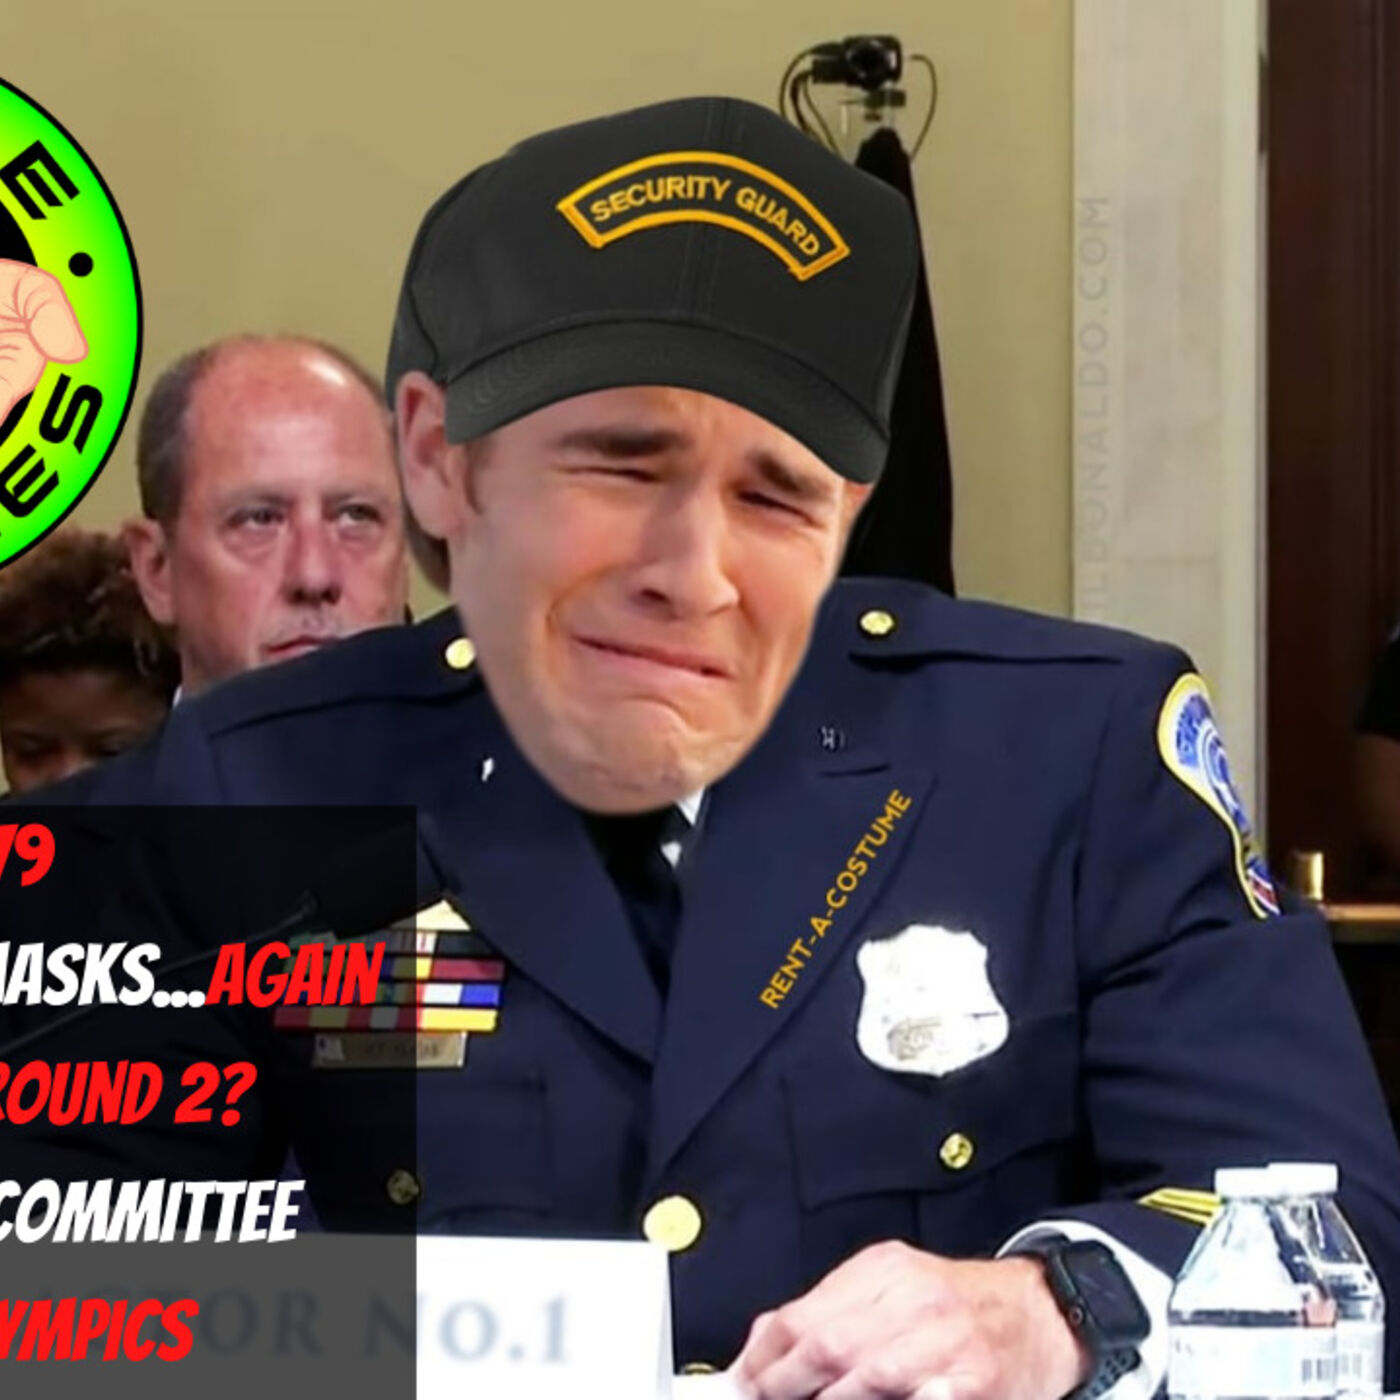 WS#79 CDC Mandates Masks...Again, Lockdown Round 2? January 6th Committee Crying Olympics